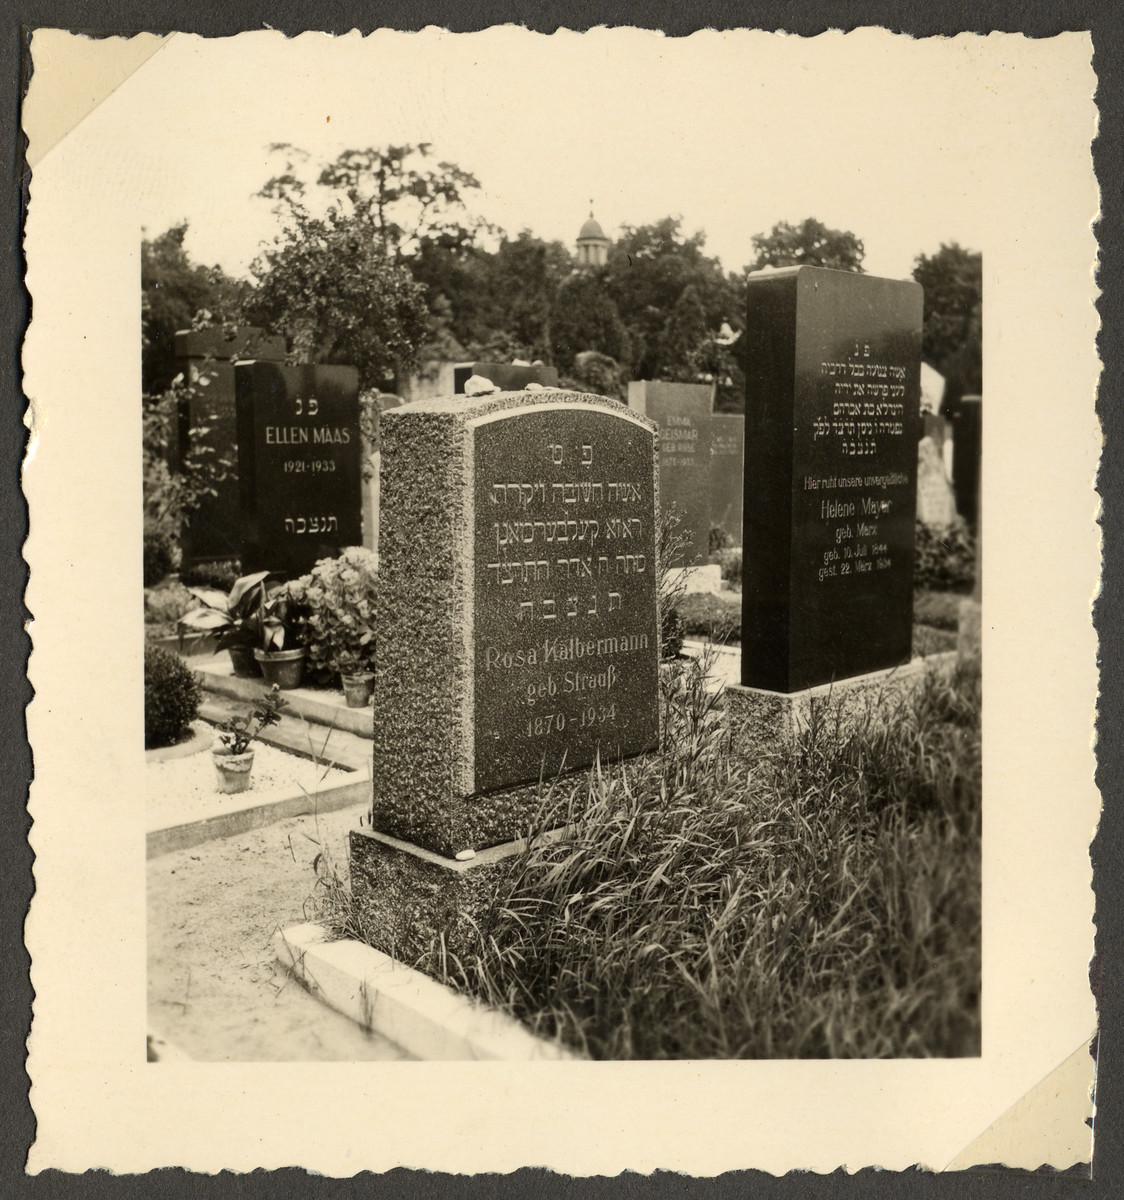 View of the tombstone of Rosa Kalbermann (1870-1934).